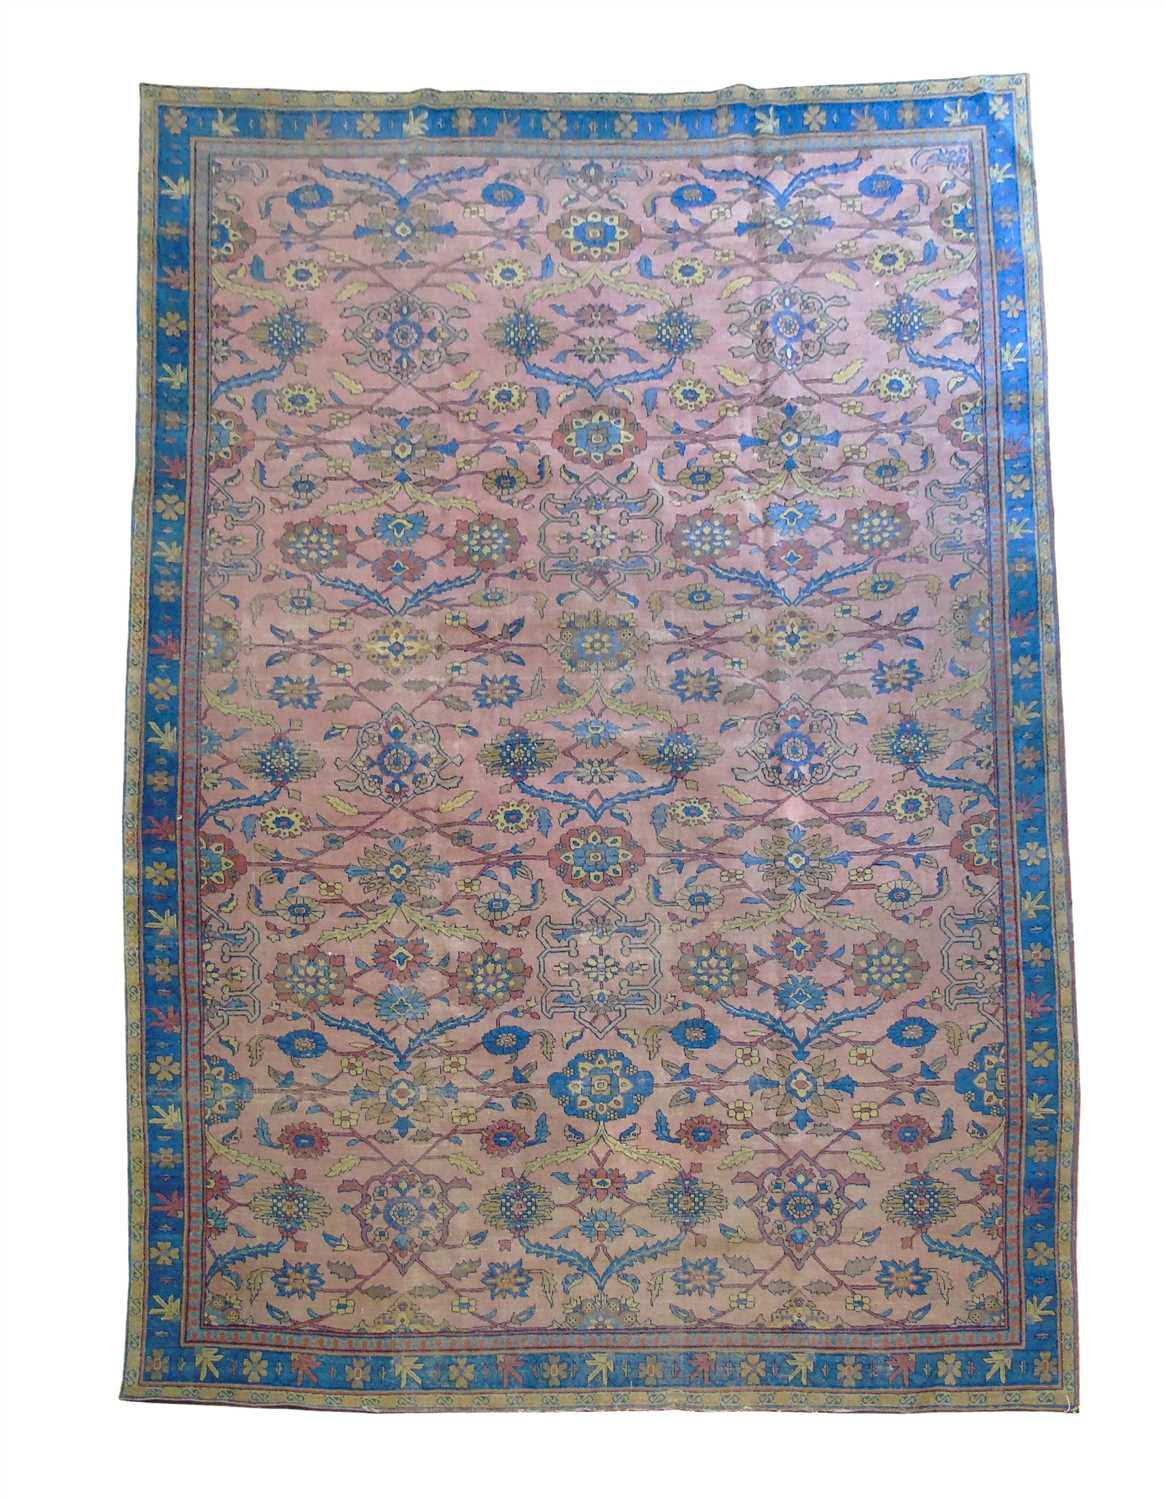 549 - Late 19th century Lilihan carpet.